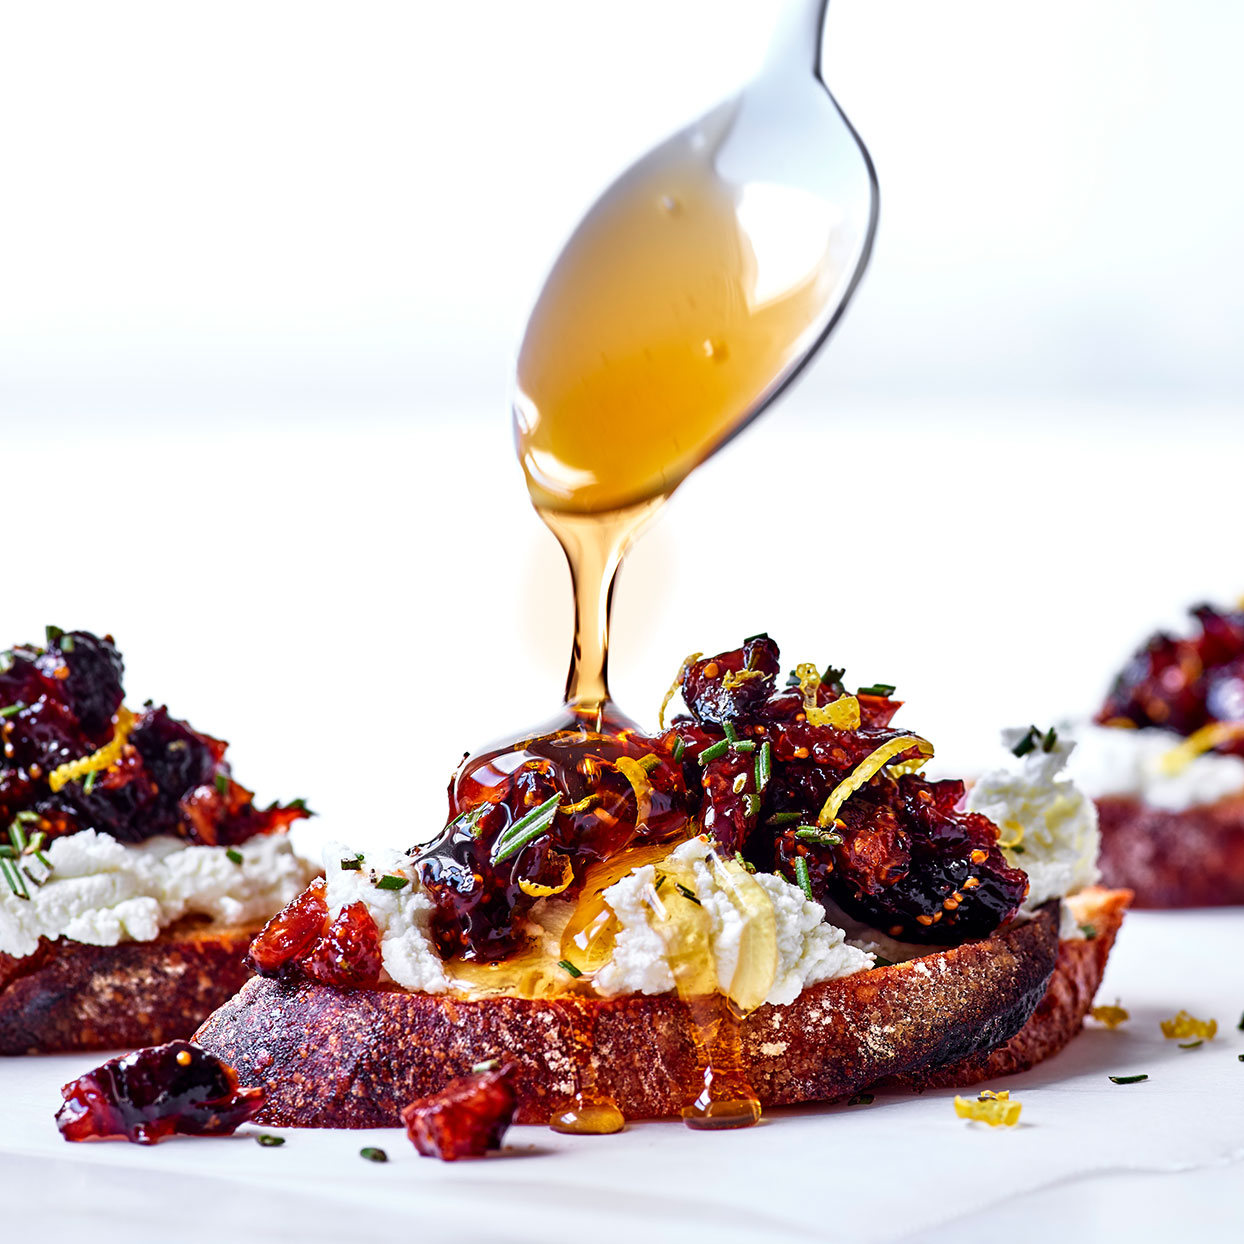 Goat Cheese Crostini with Fig Compote Trusted Brands